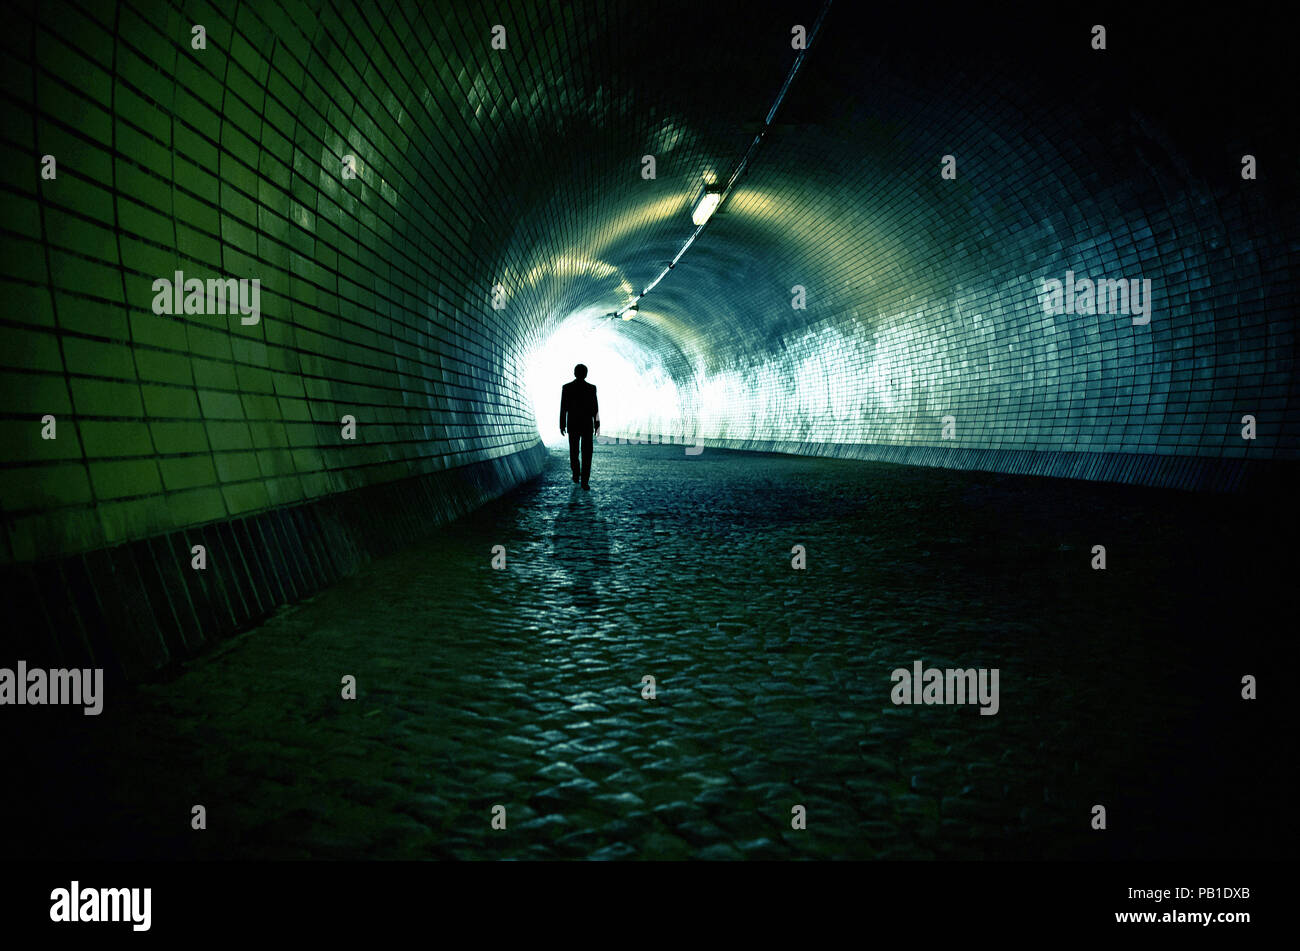 man walking under a tunnel toward the exit - image for book cover Stock Photo